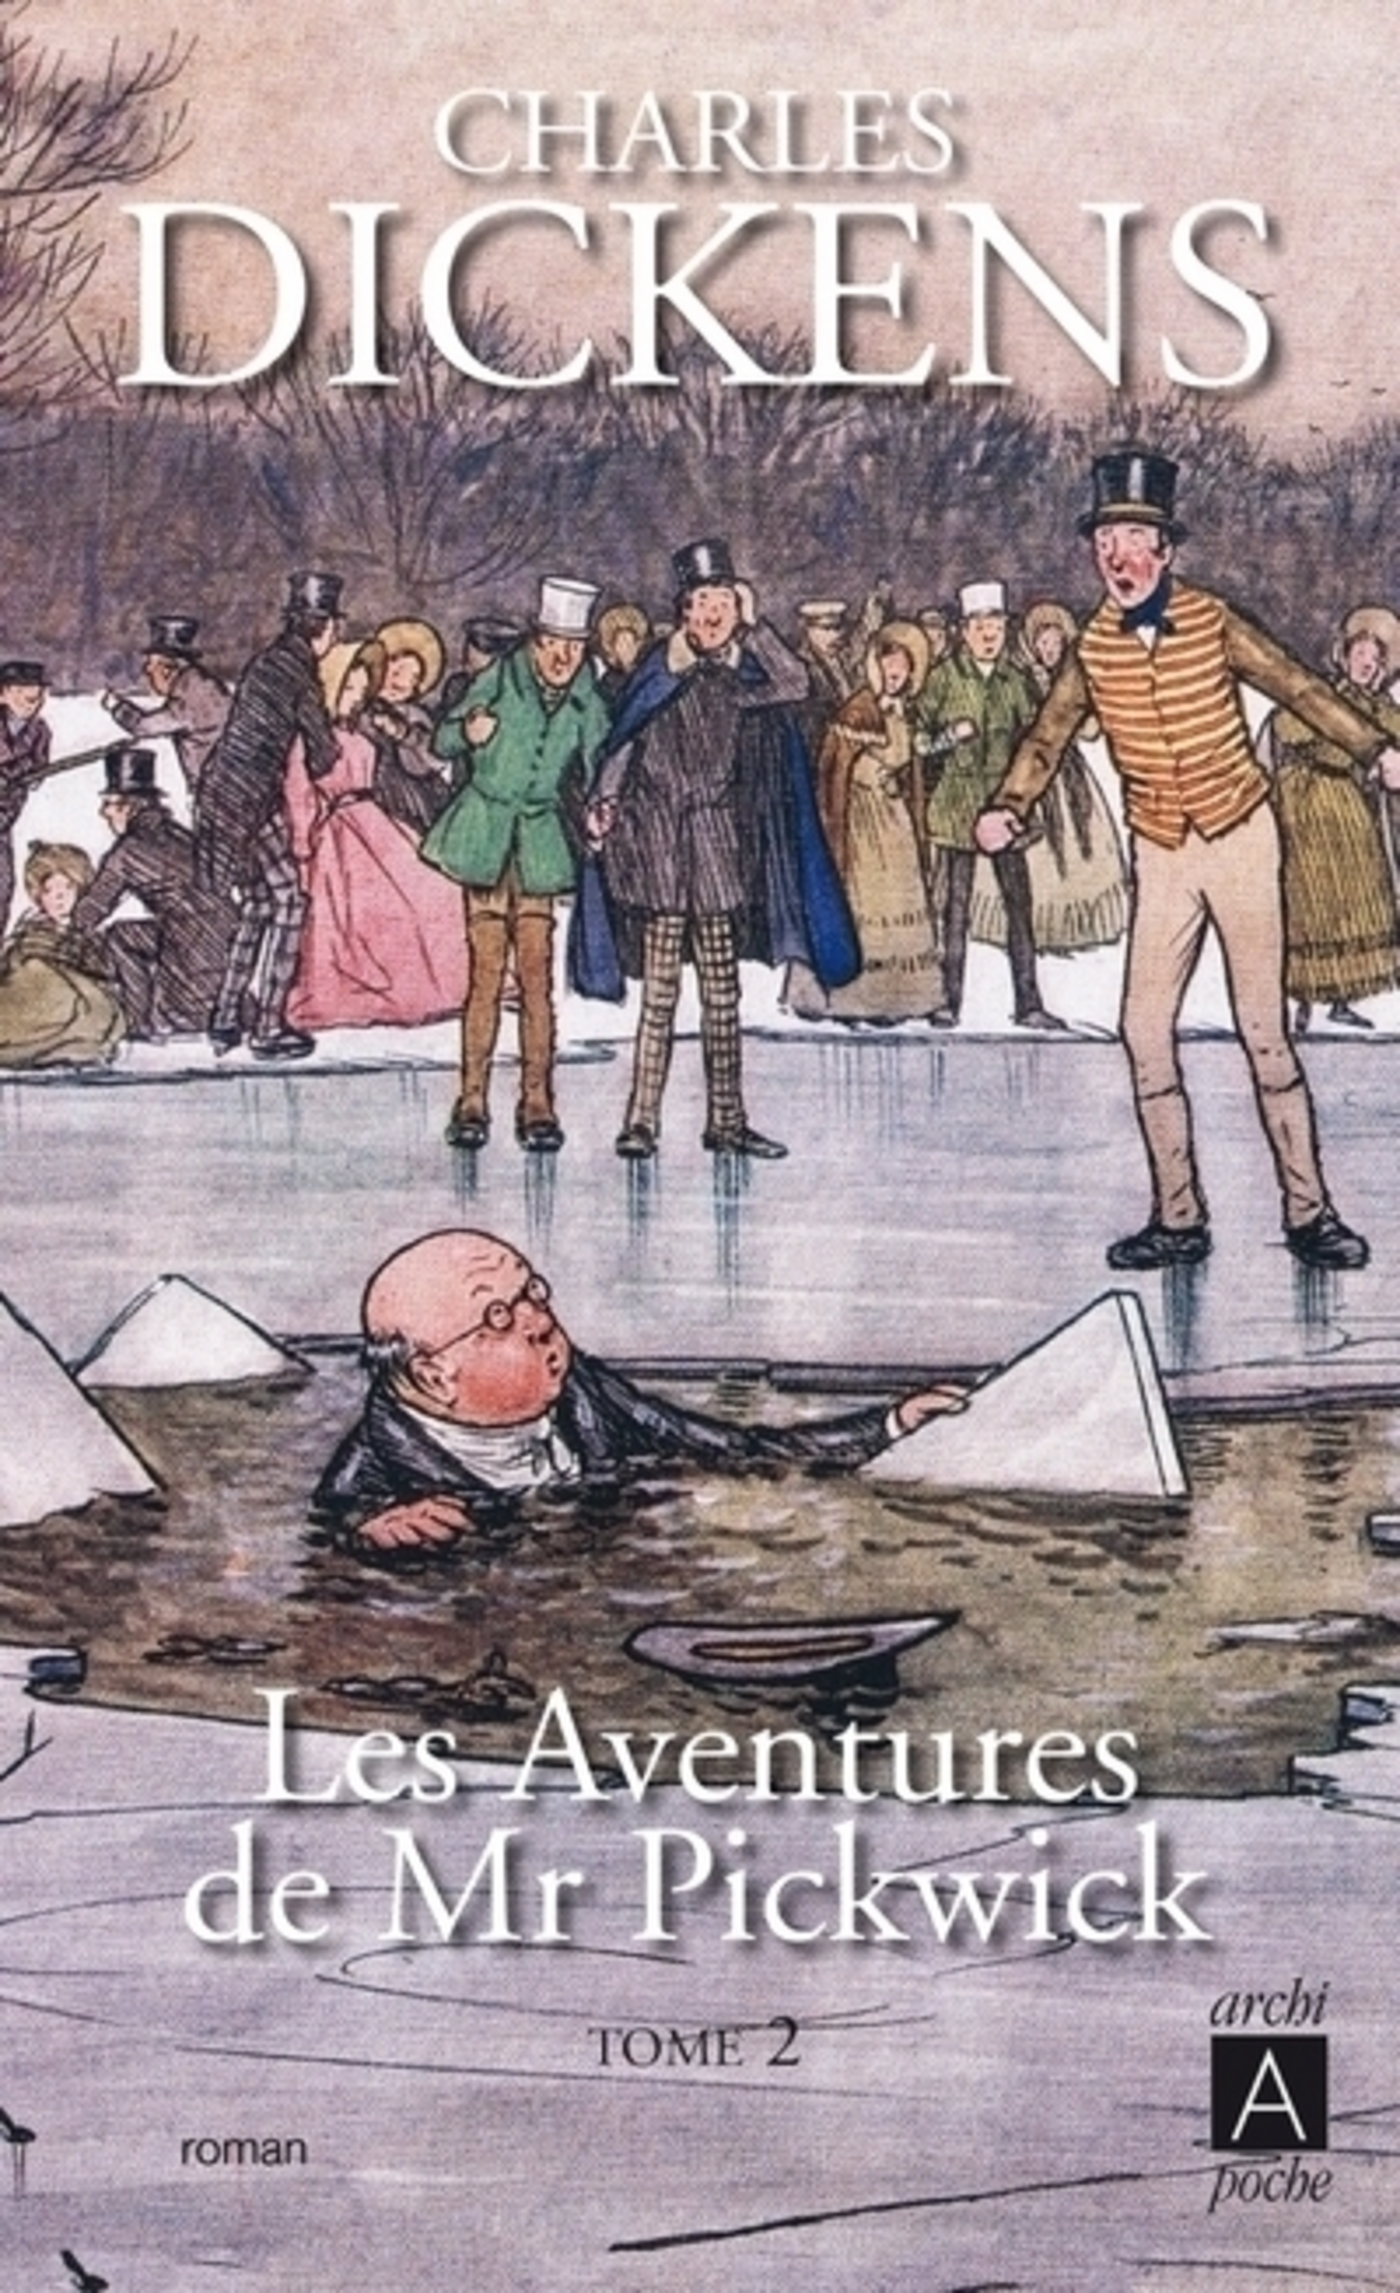 Les aventures de Mr Pickwick tome 2